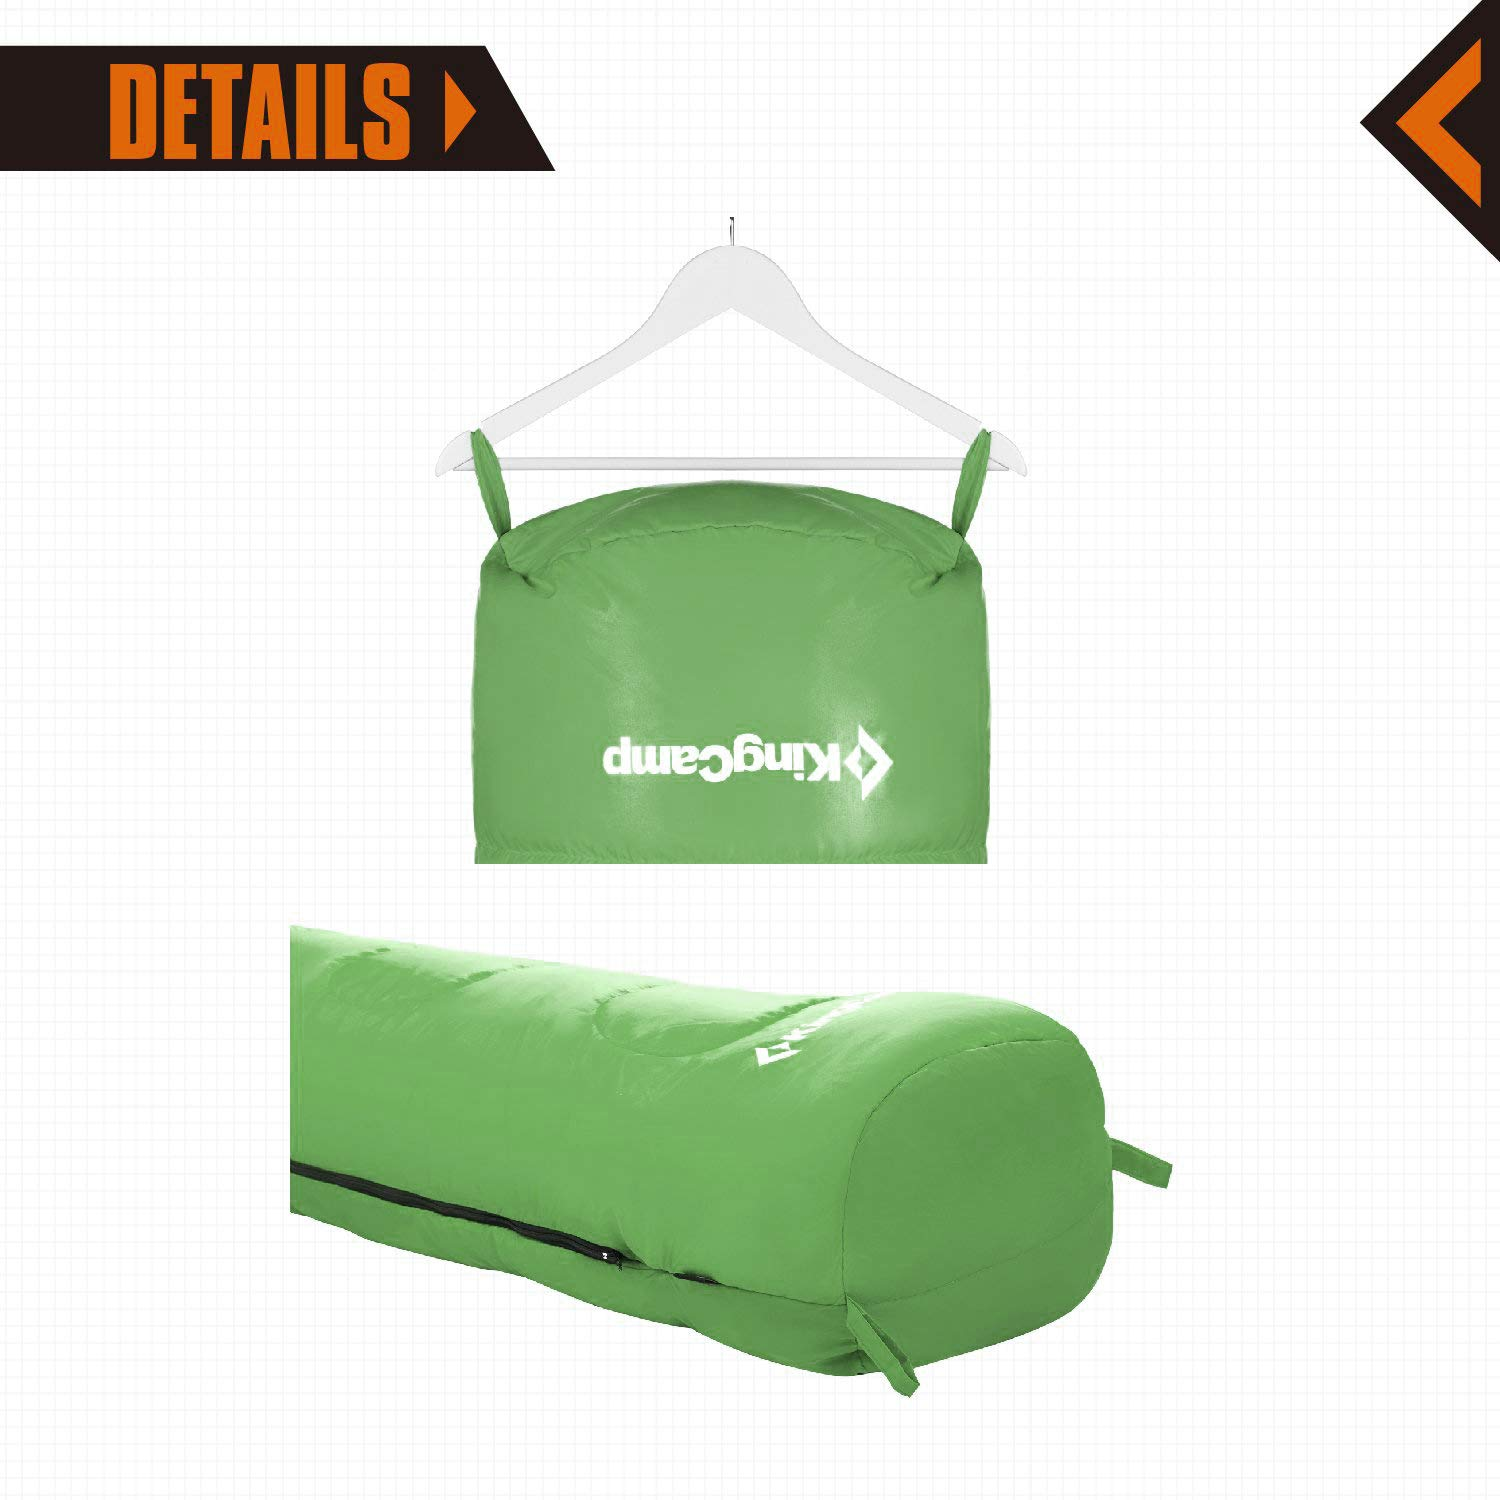 KingCamp Mummy Sleeping Bag 8.6 Degree F 300g//m2 Warm Loft Filling Cold Weather Ultra Compact for Camping Backpacking 4 Season Ultralight Men and Women Adult Lightweight with Compression Sack